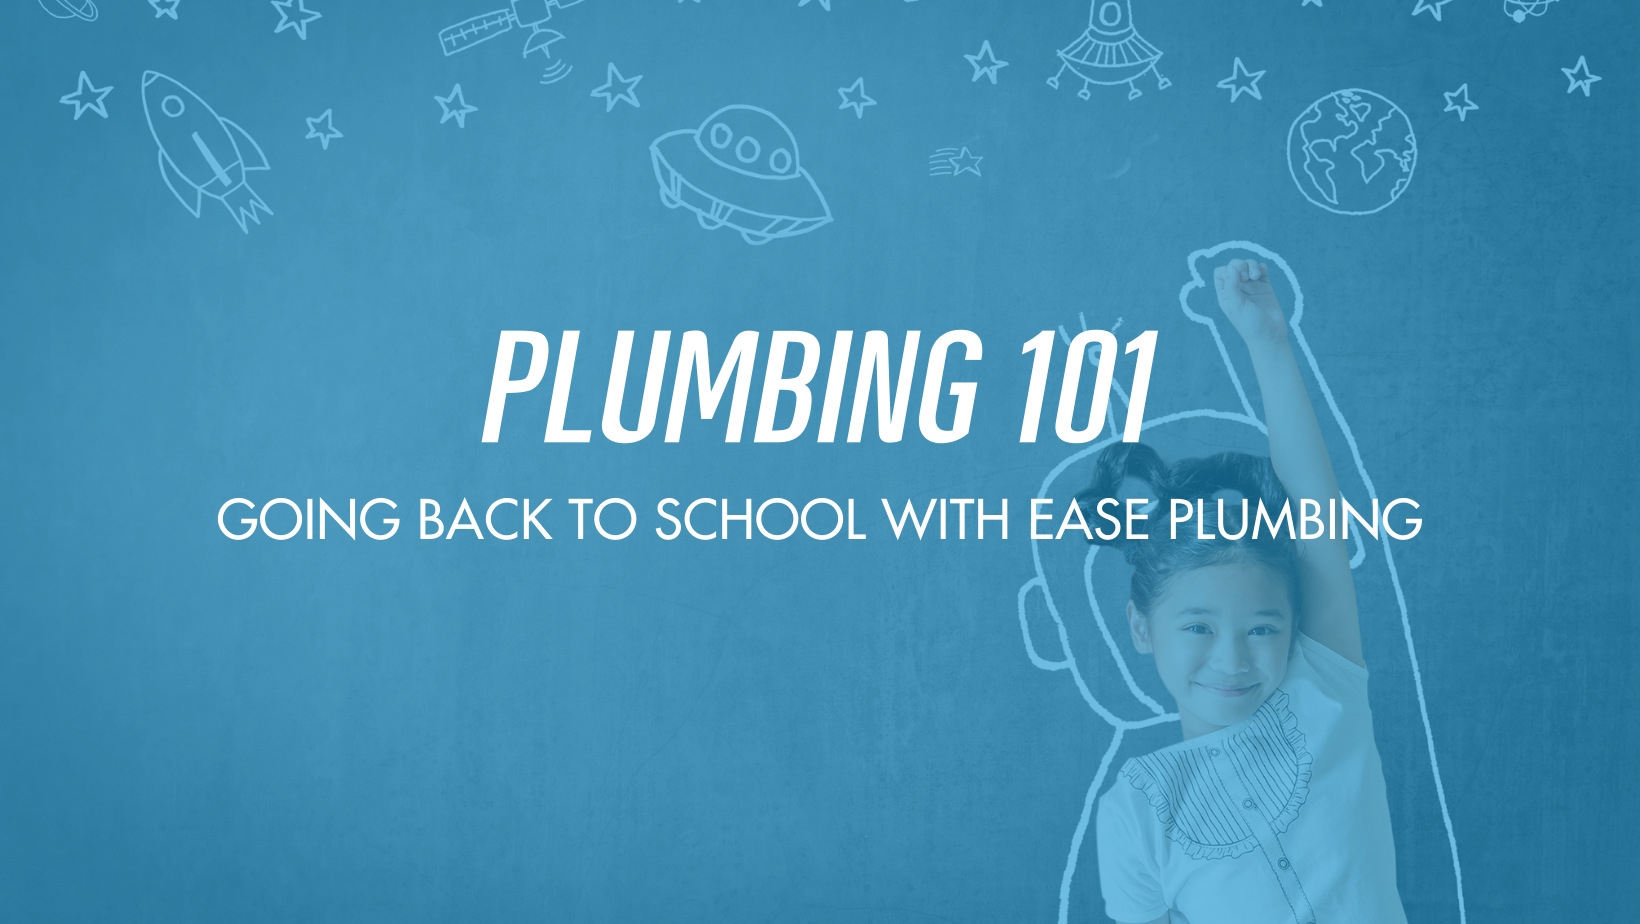 Go Back to School with Ease Plumbing and Study Up On These Plumbing Facts